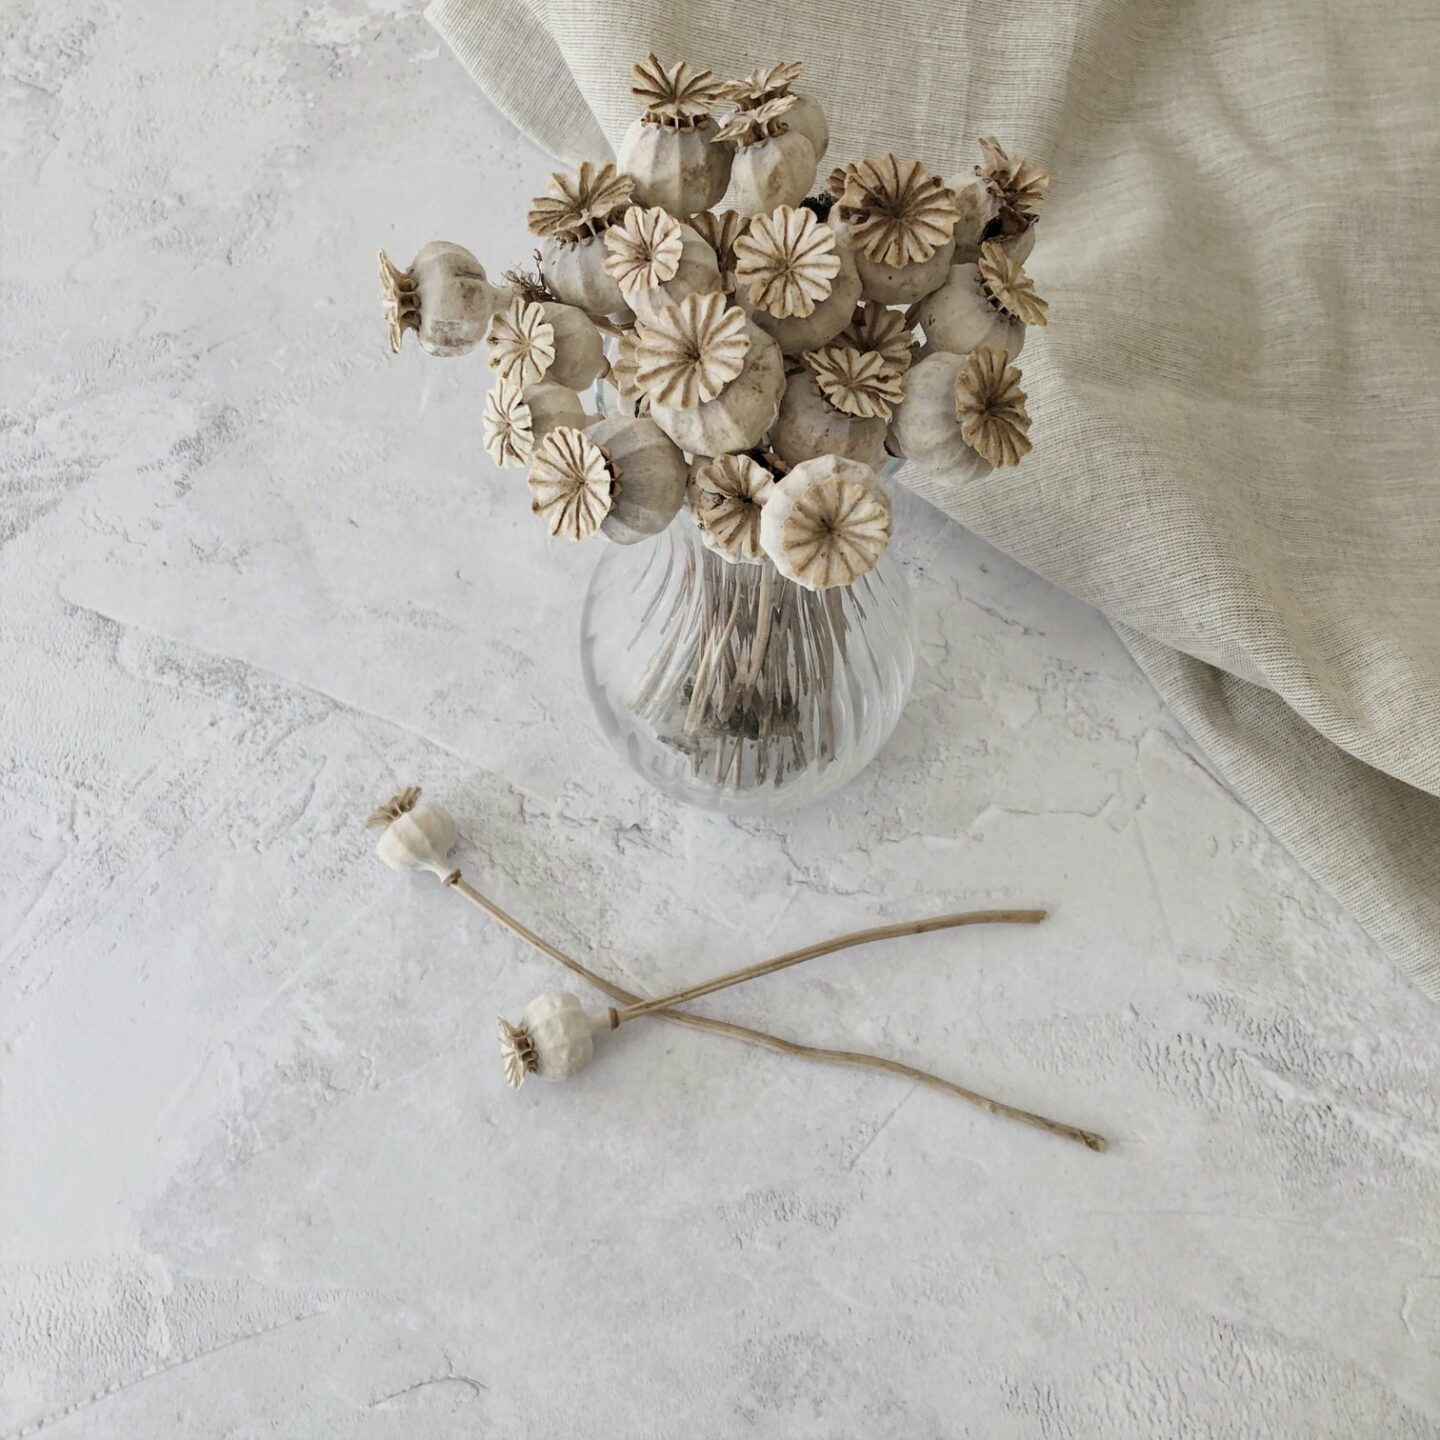 Dried poppy heads in a vase